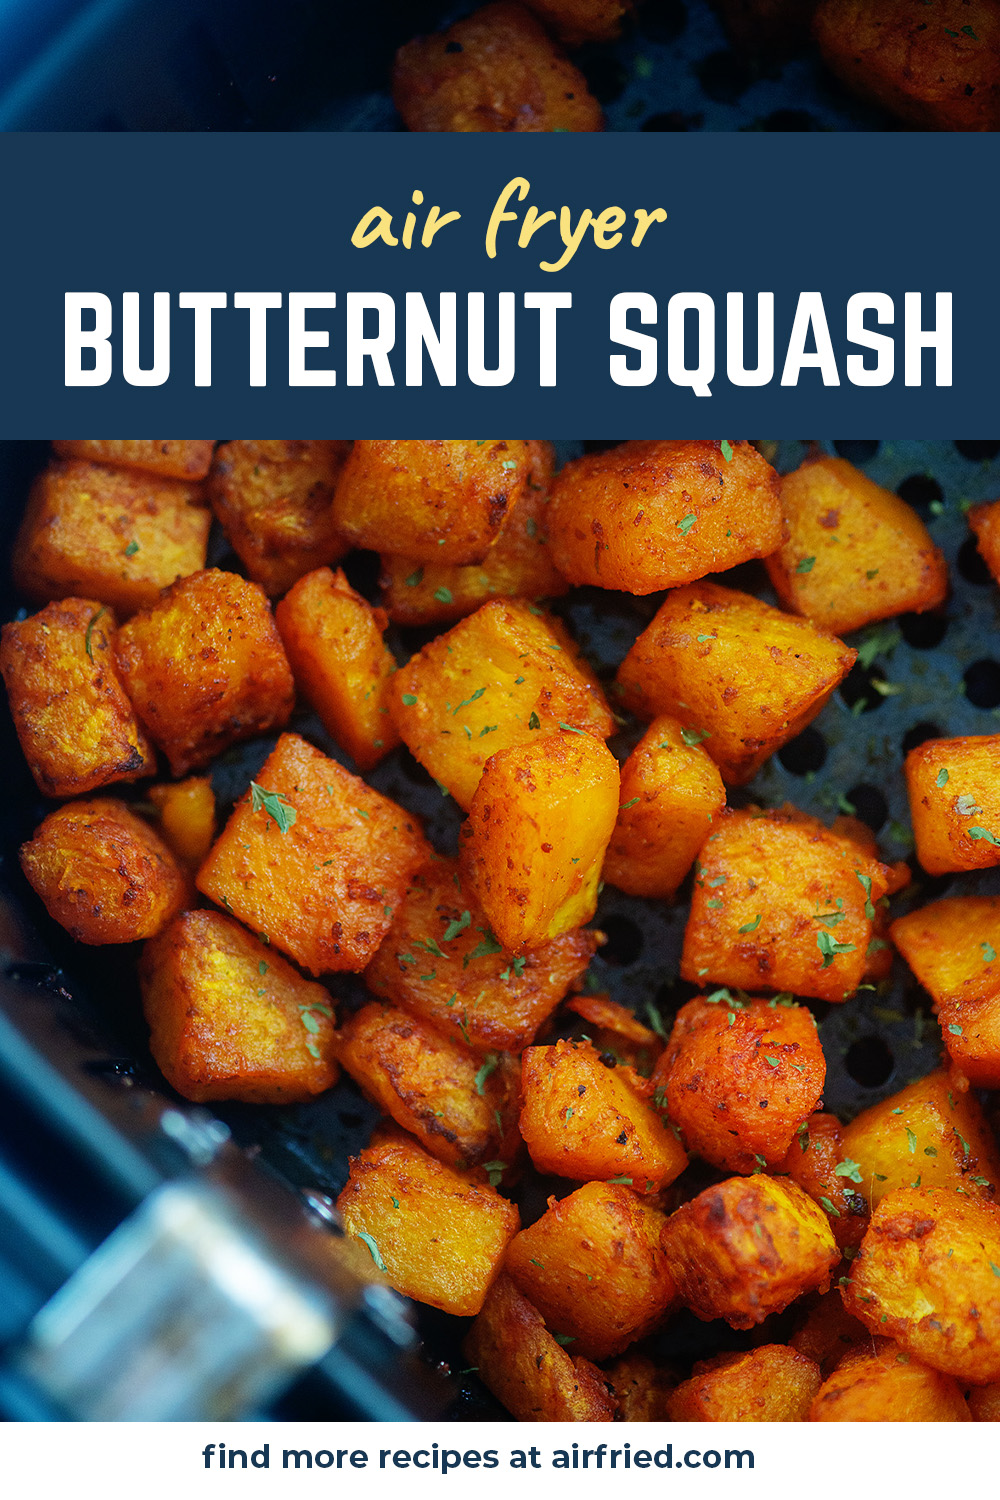 We are loving this butternut squash from the air fryer!  We serve it with pasta and with sausages sometimes.